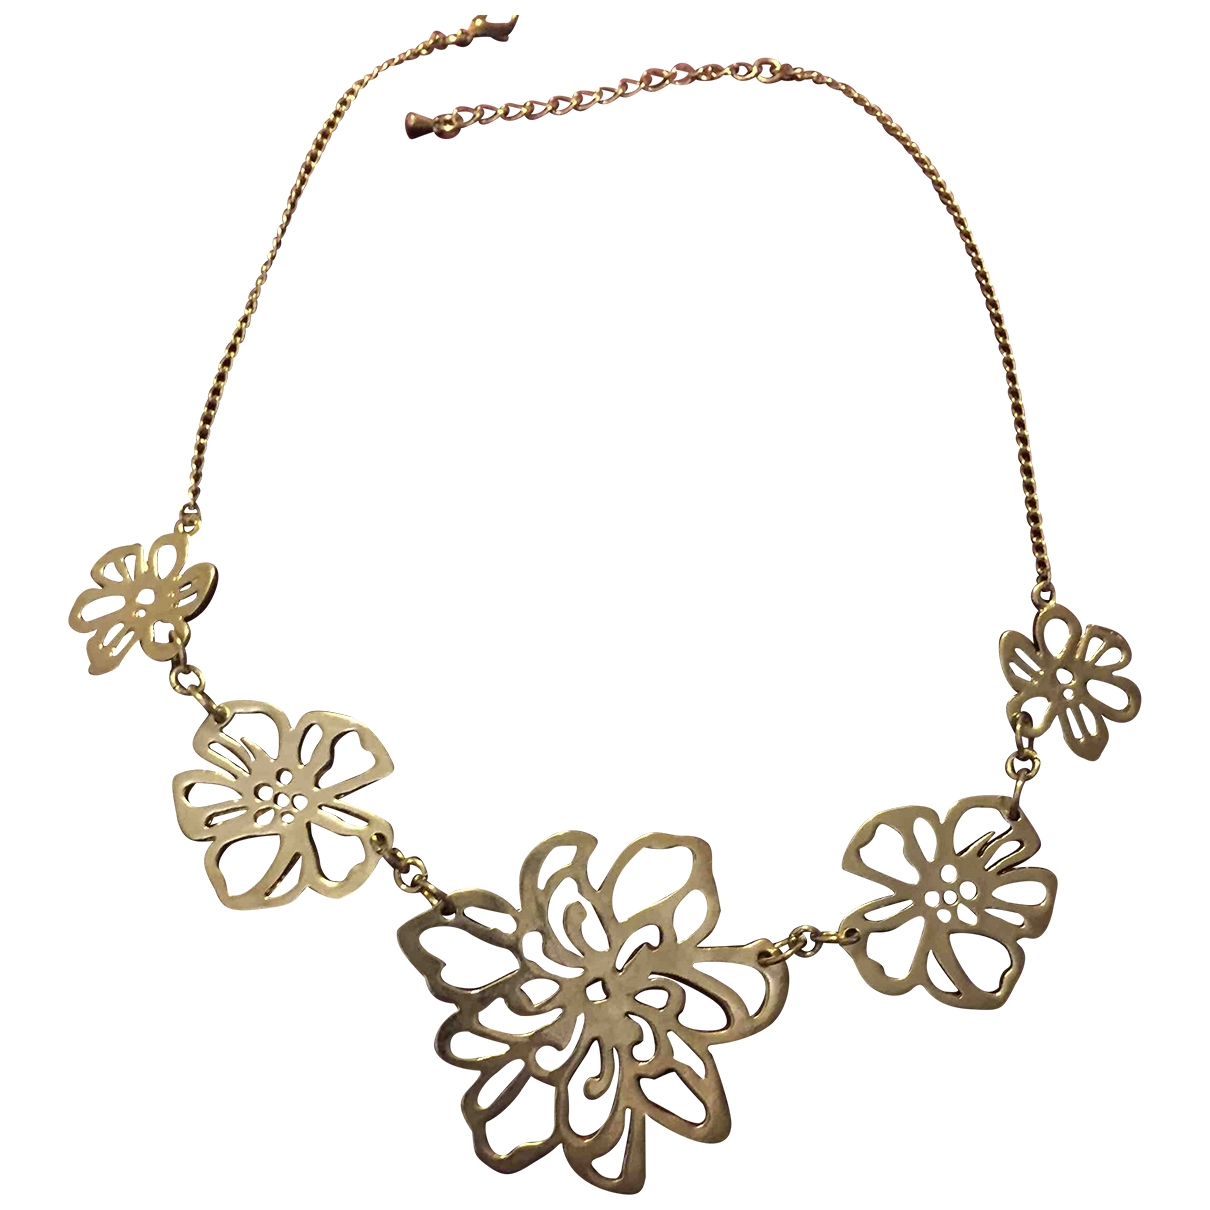 Non Signe / Unsigned Motifs Floraux Kette in  Gold Metall